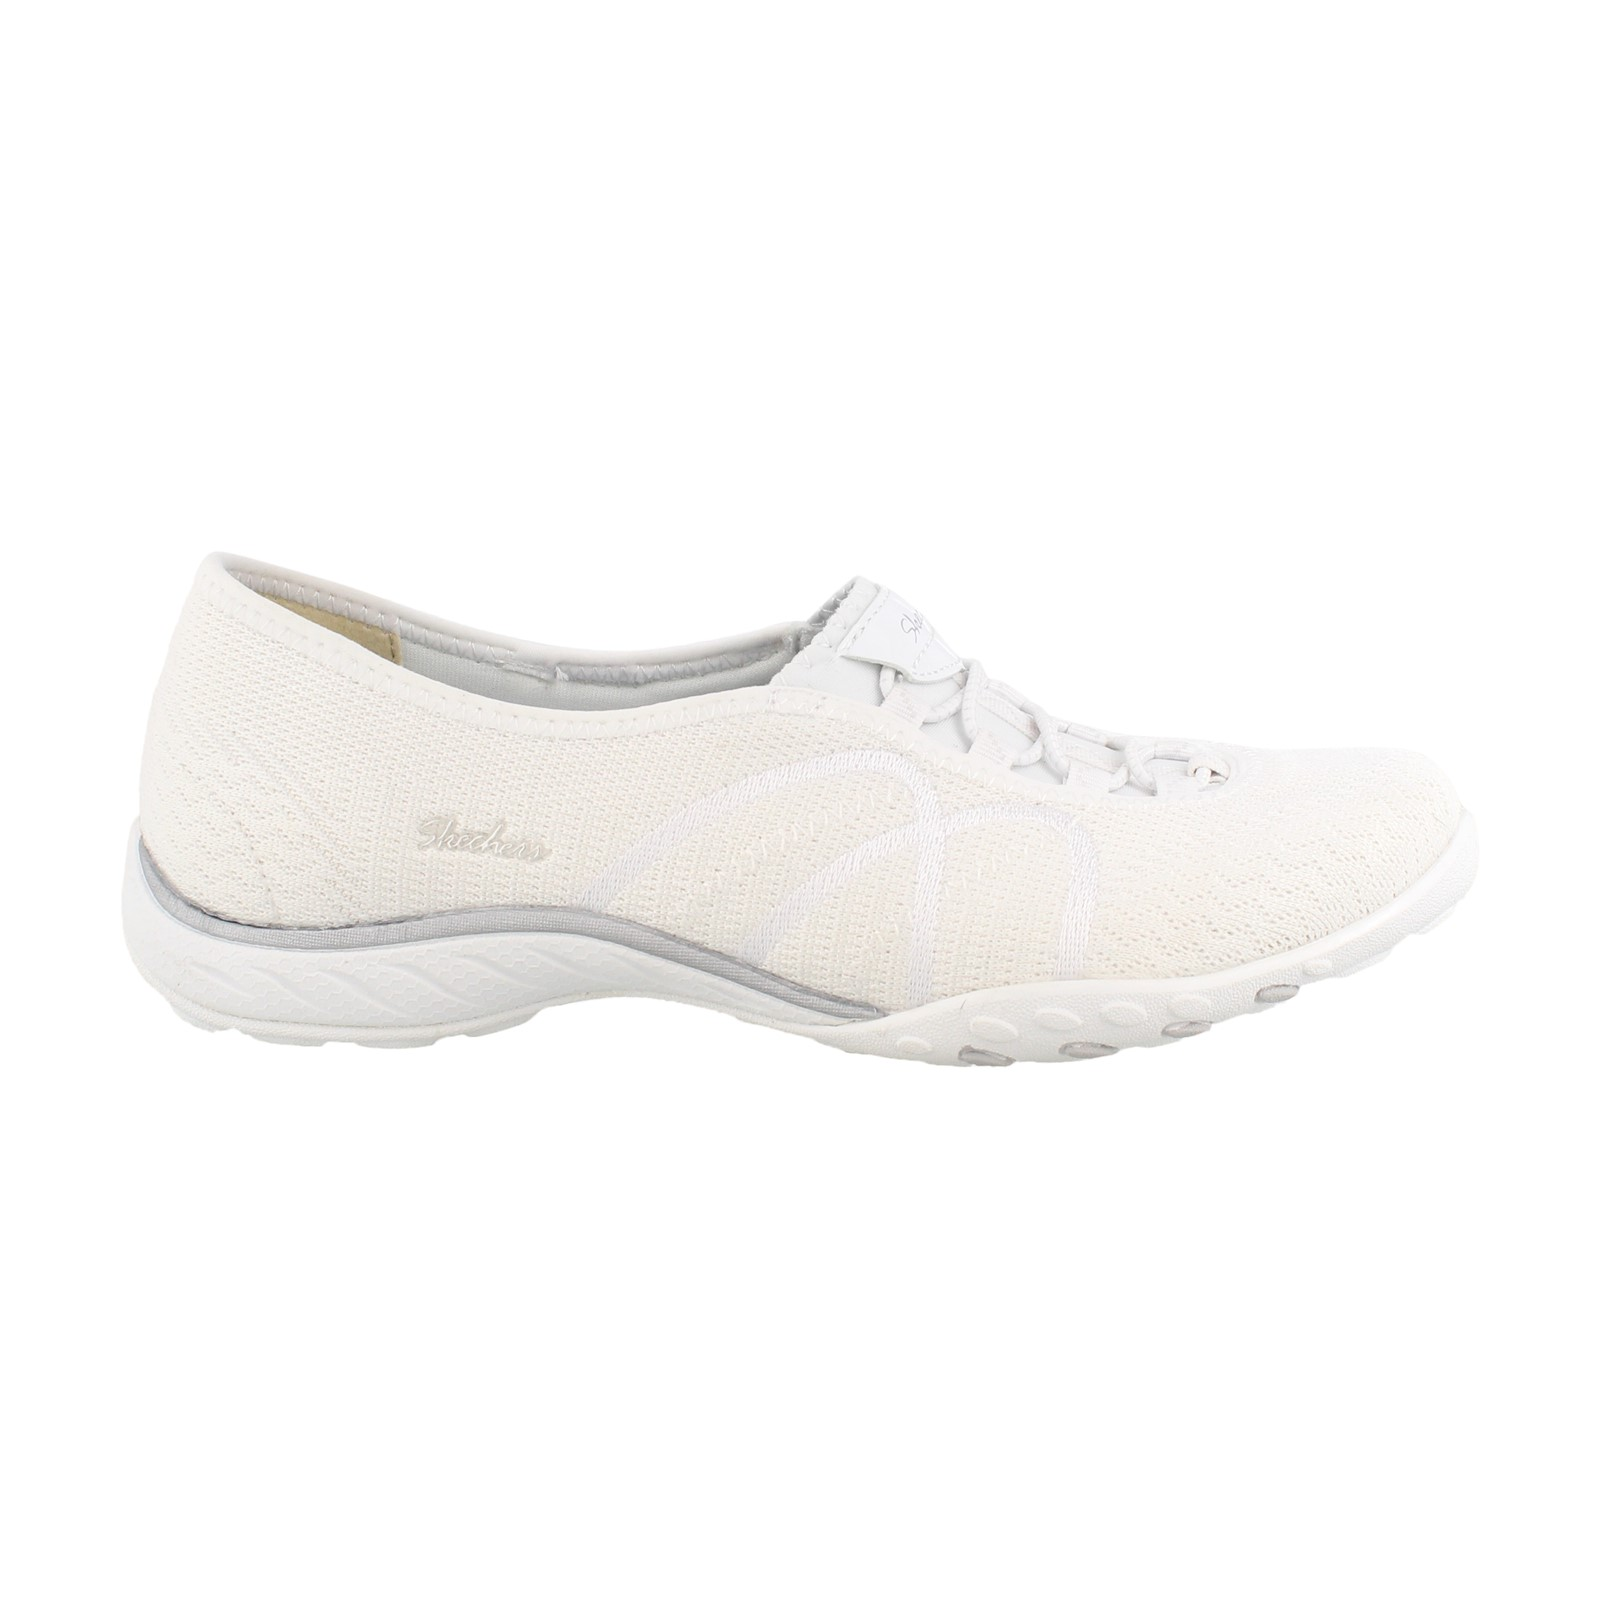 Women's Skechers, Relaxed Fit Breathe Easy Sweet Jam Slip on Shoes